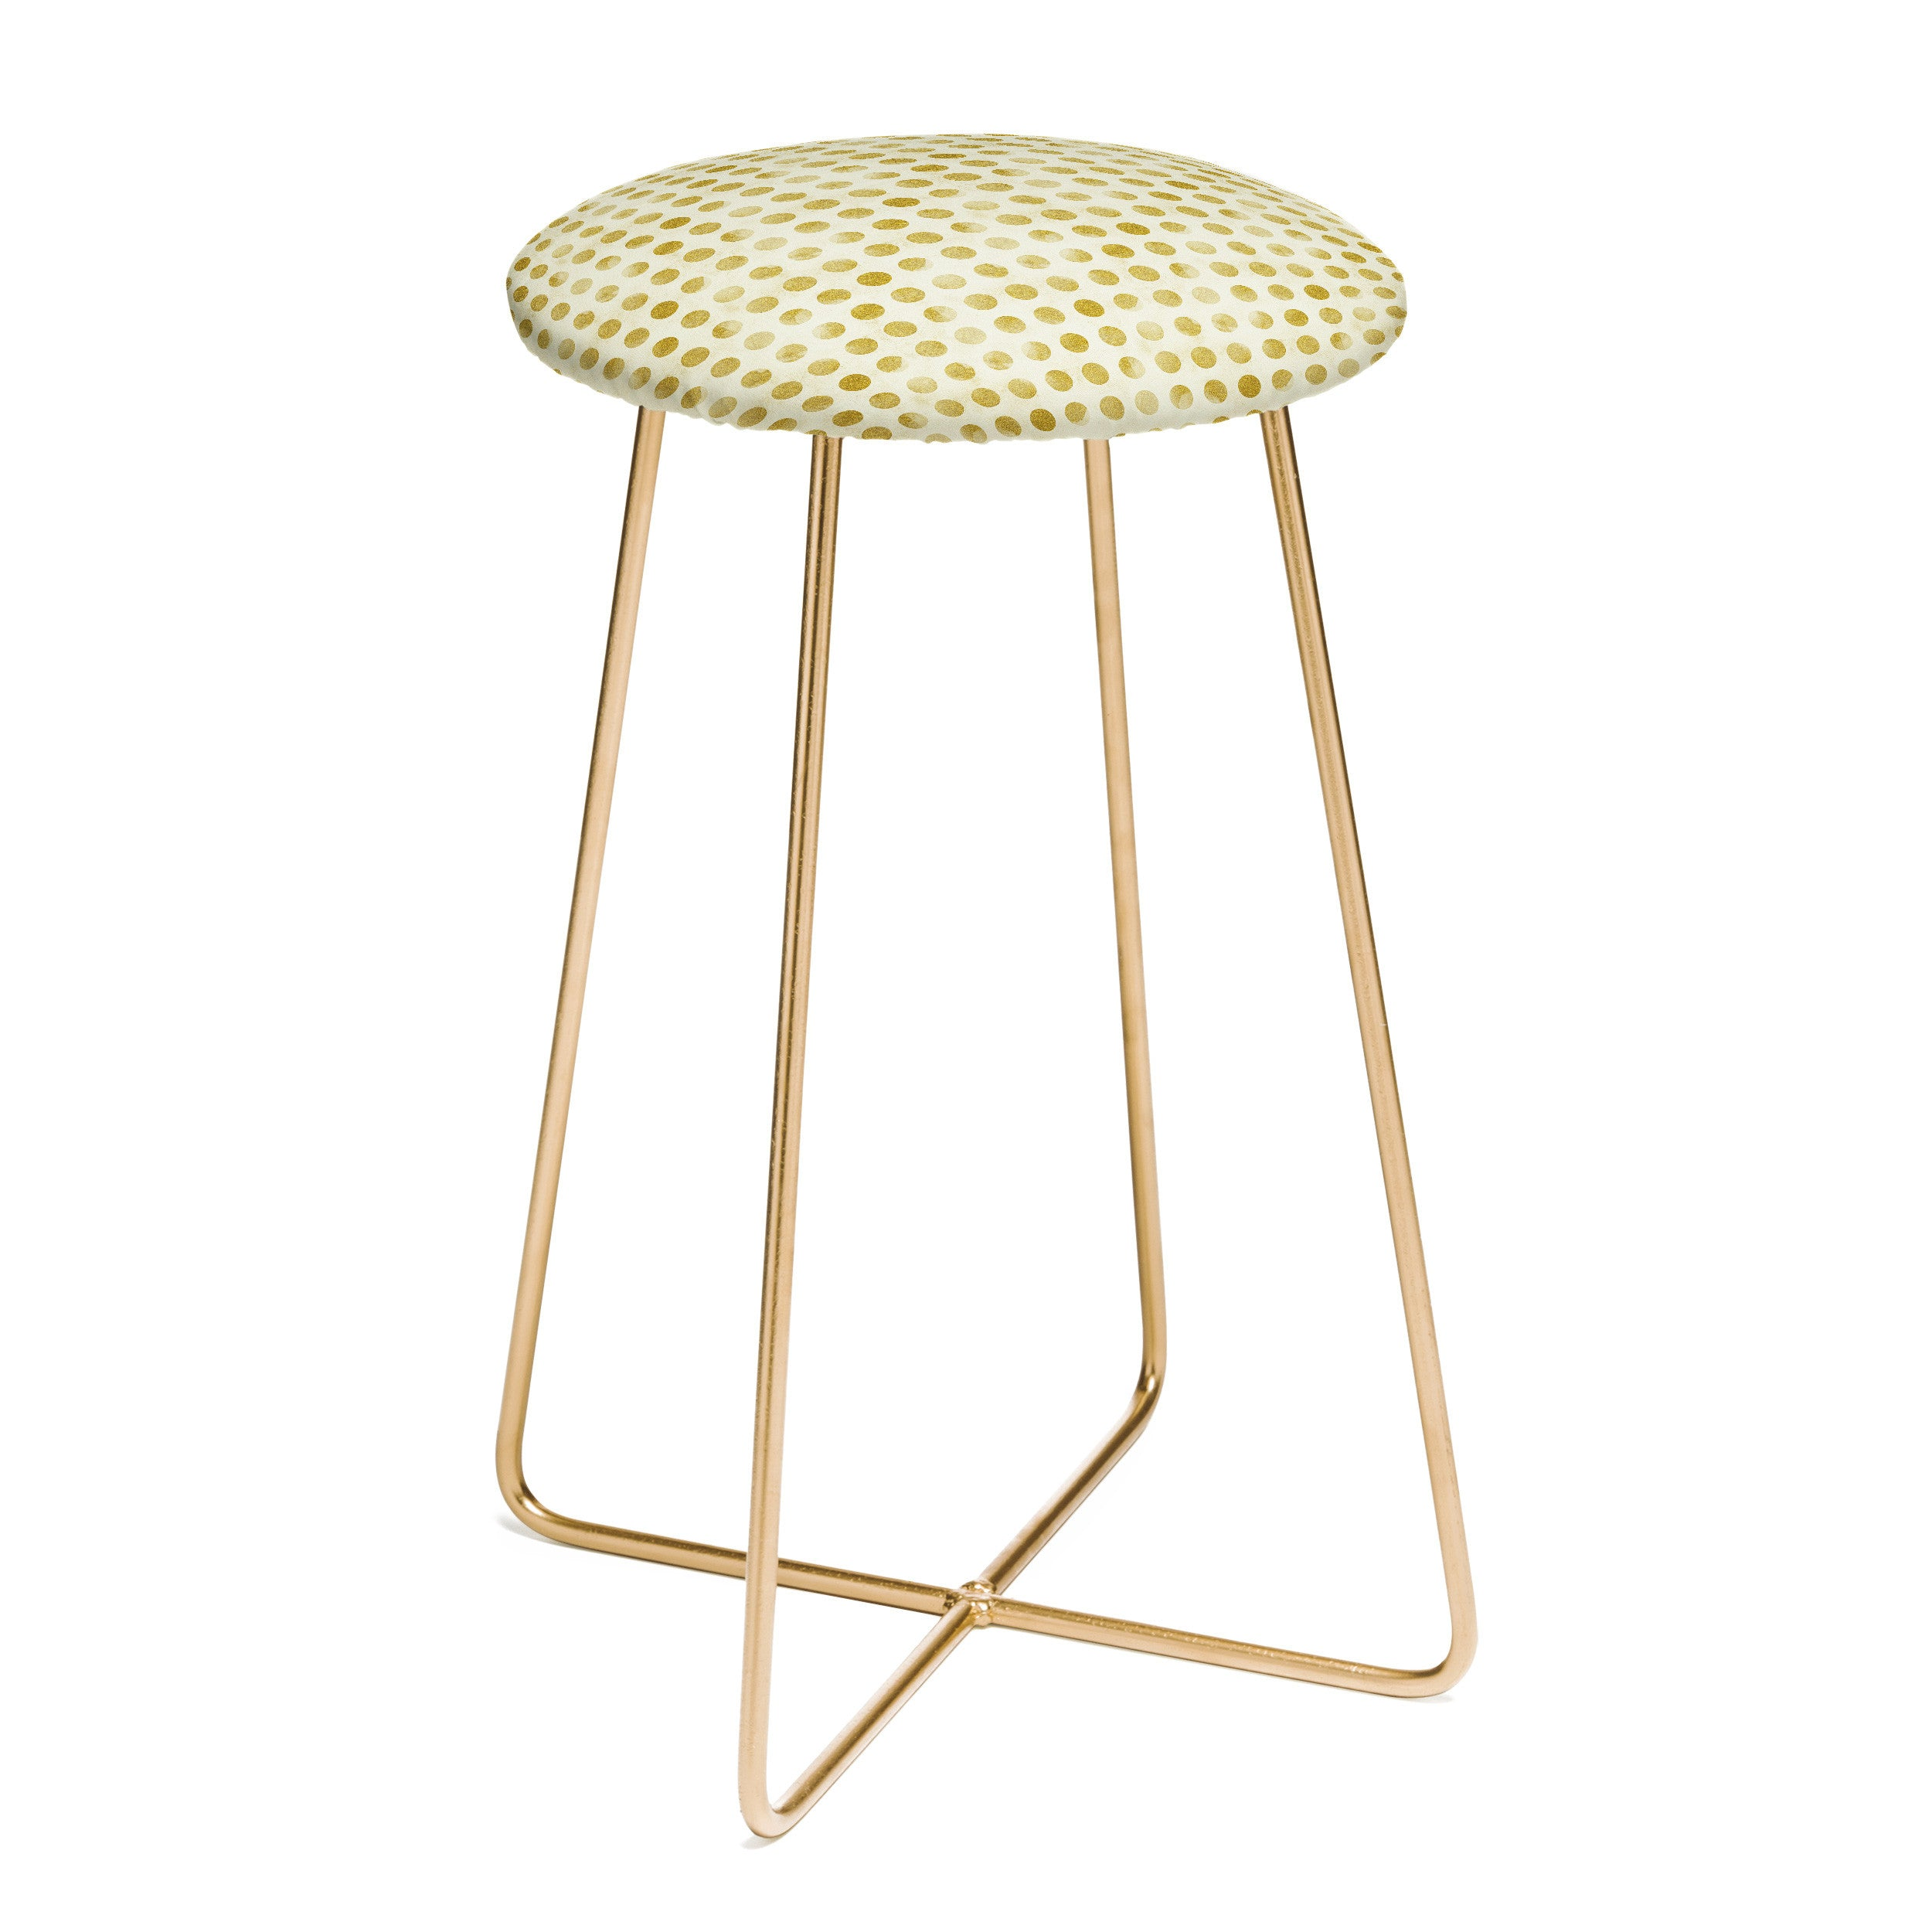 Leah Flores Gold Confetti Counter Stool